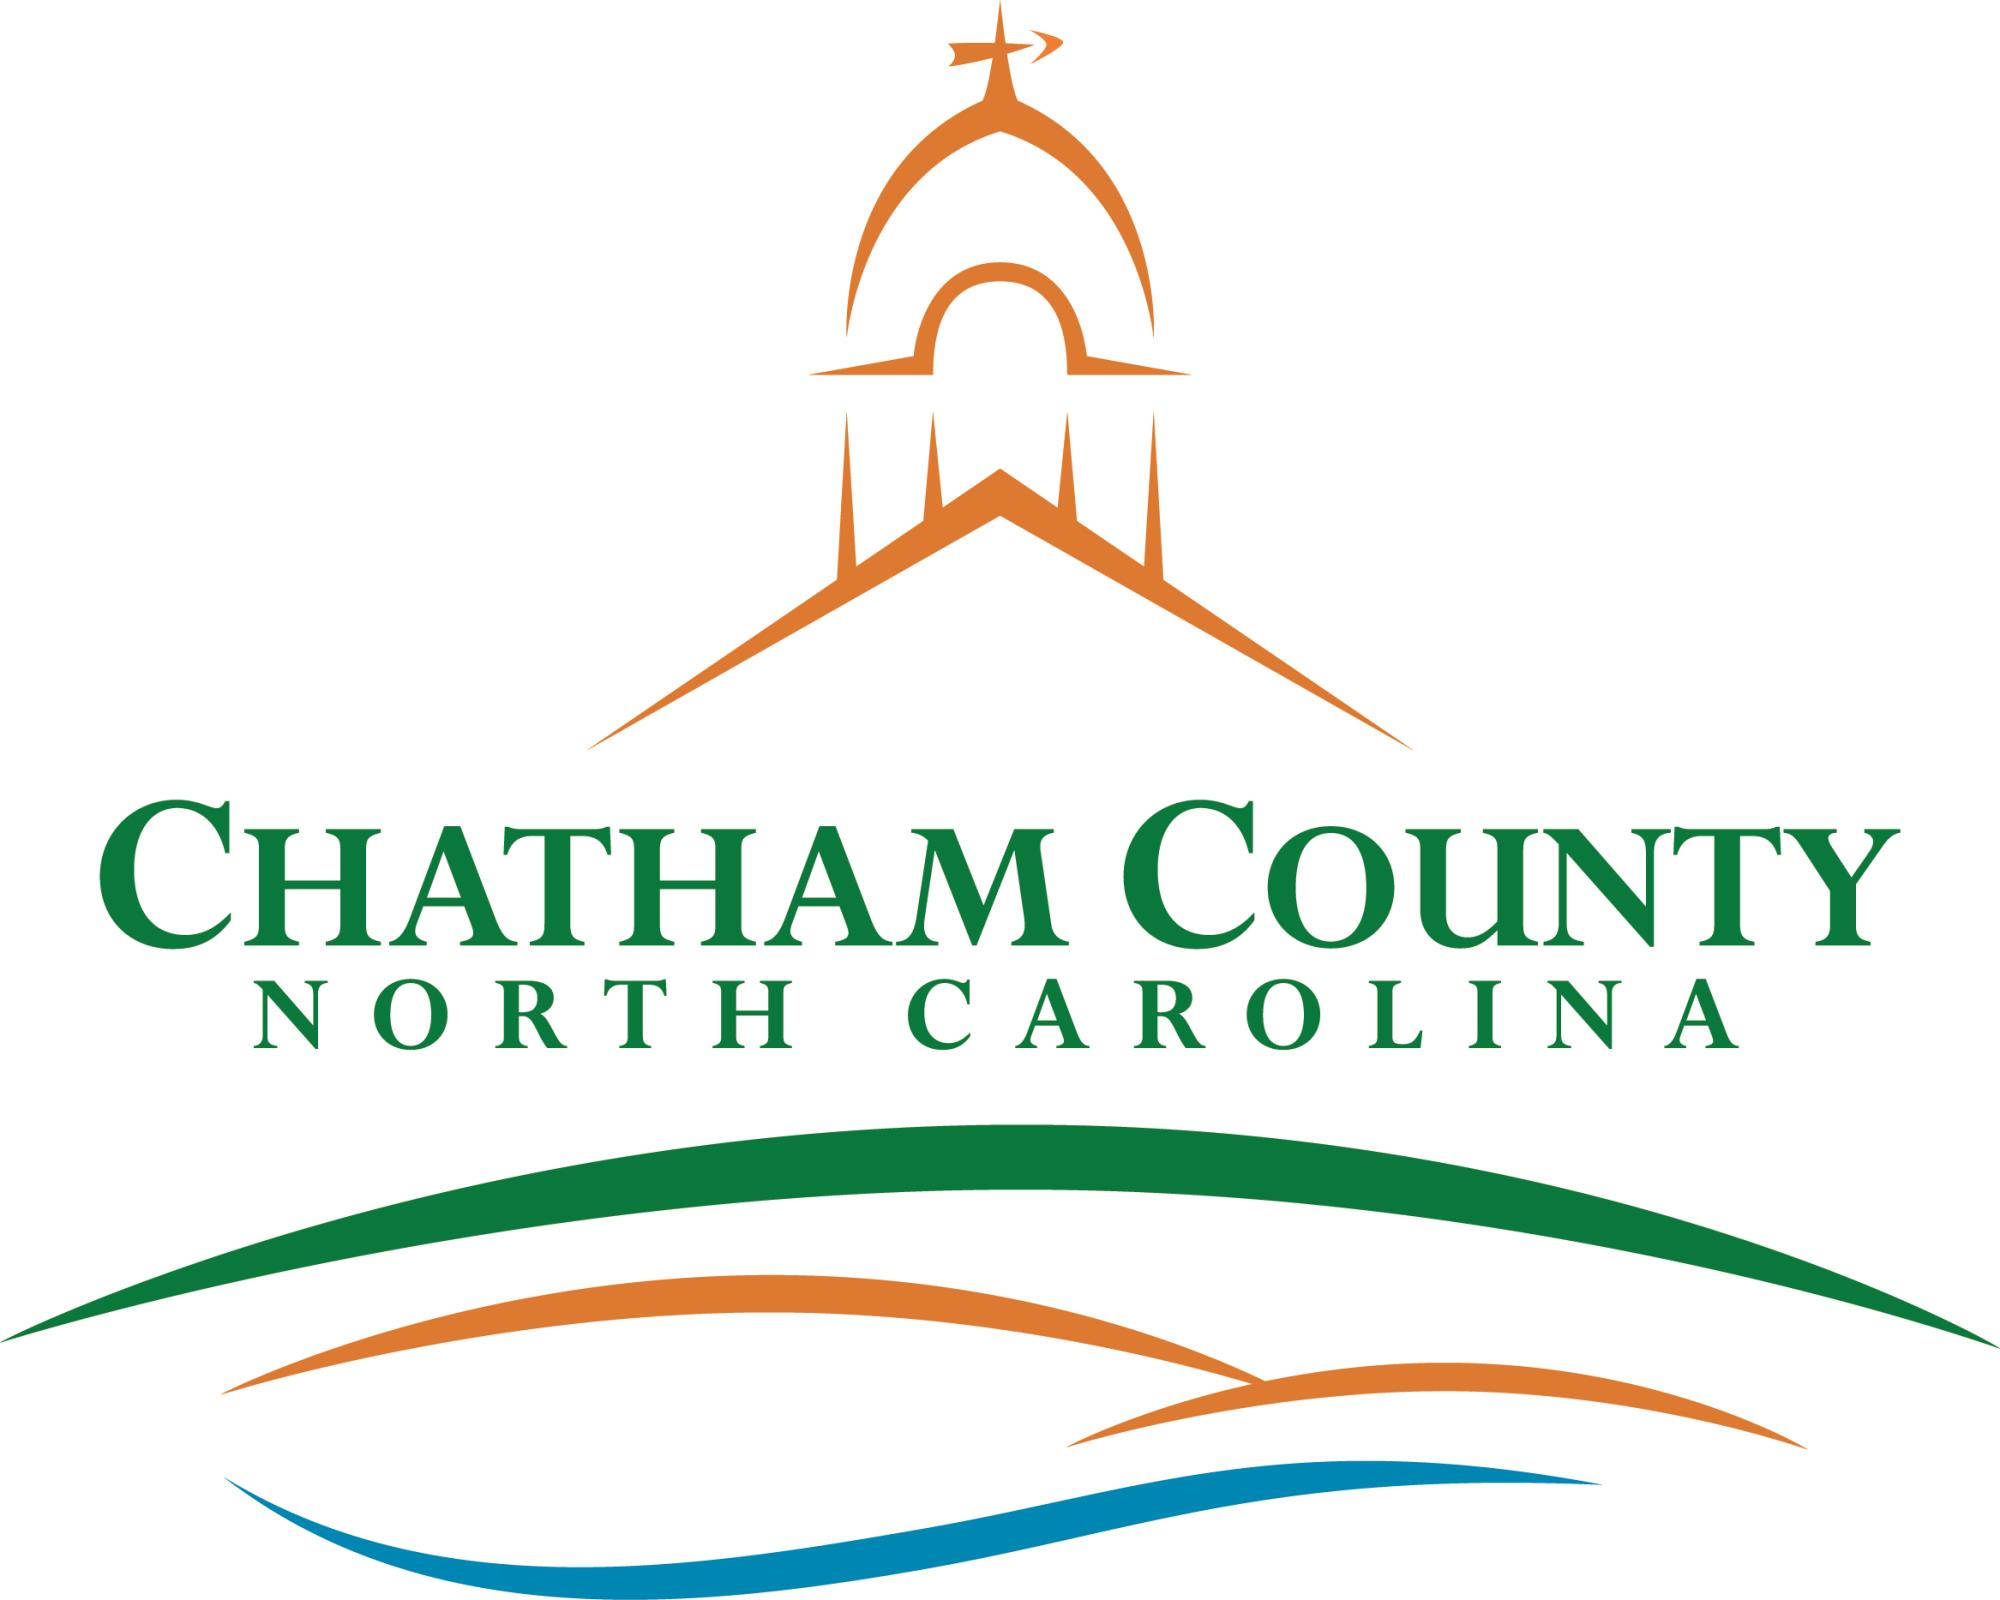 County logo CMYK 4-color high res